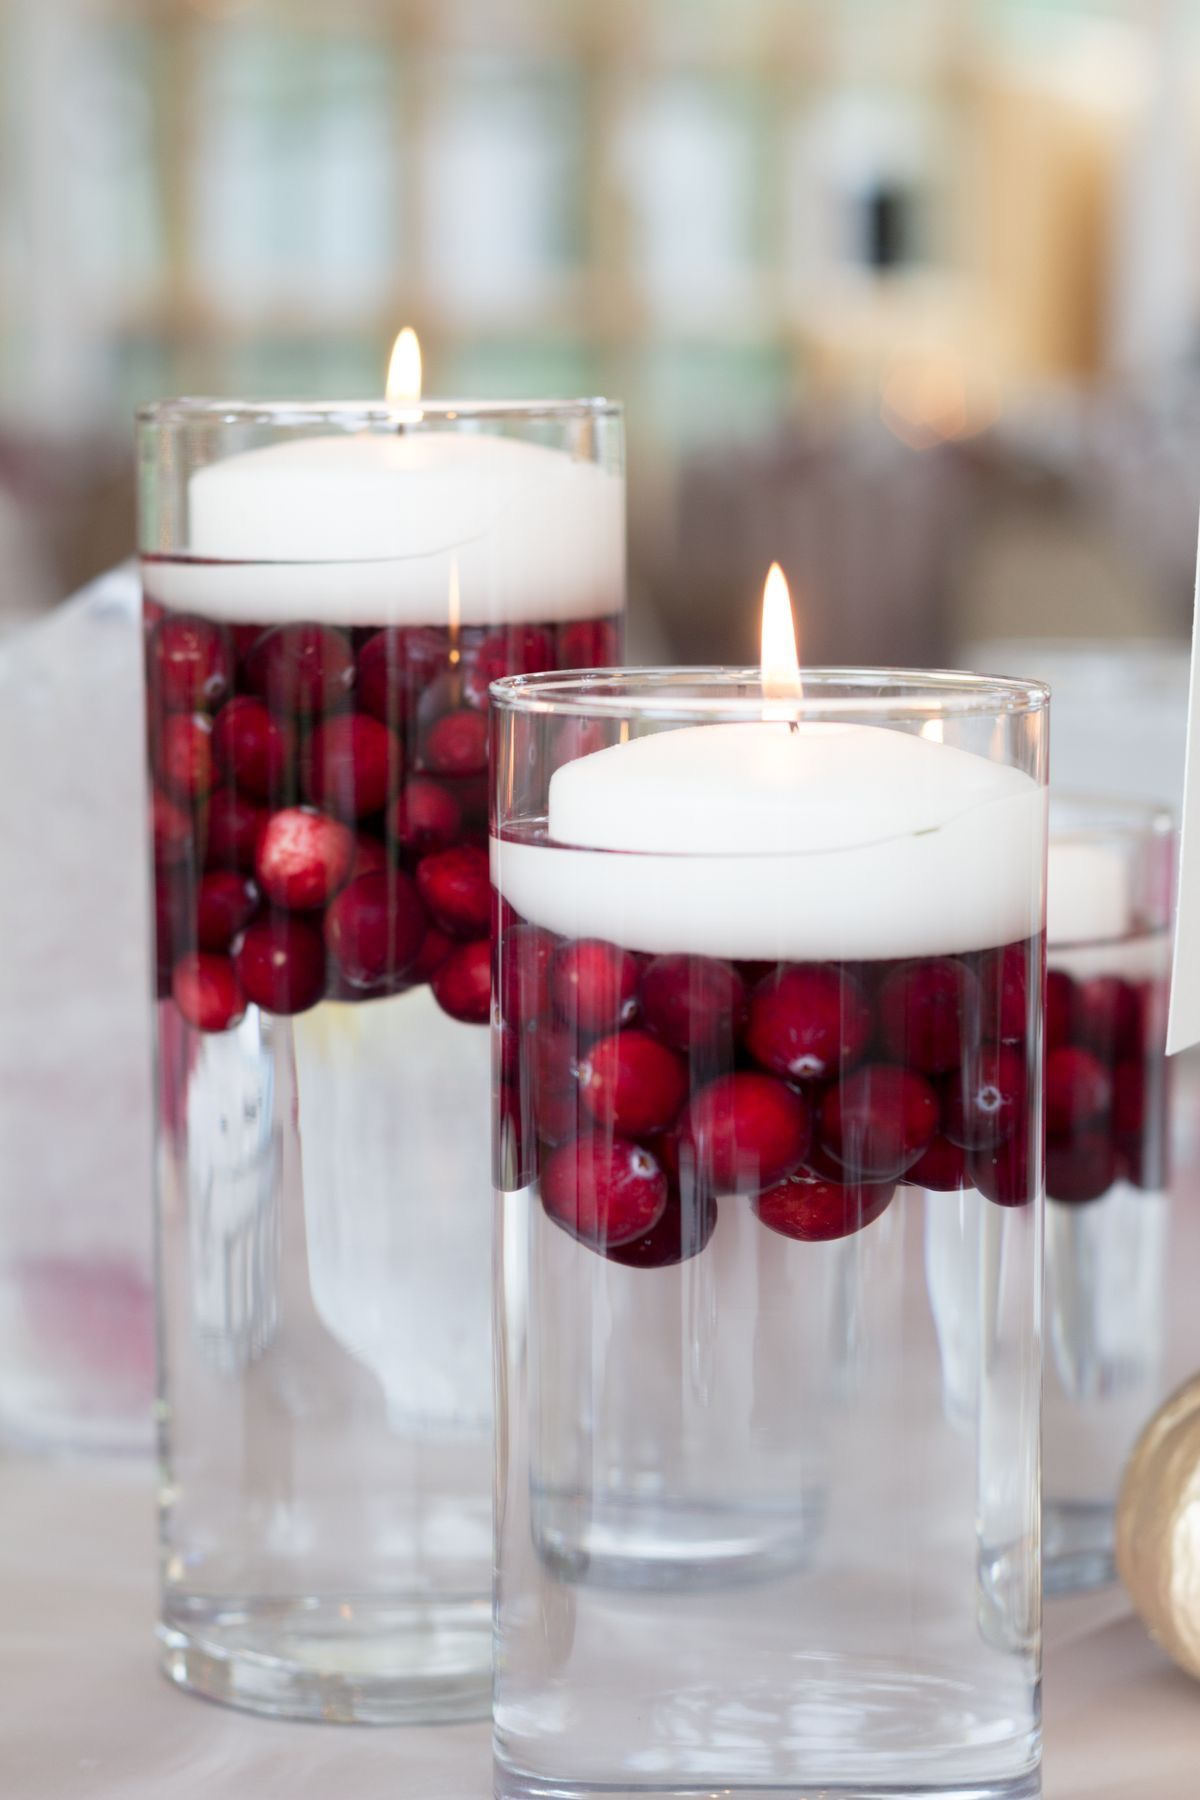 Christmas wedding ideas cranberries in clear hurricane candle allium floral design rental 3 cylinder sets with floating cranberries and llmanos 78 17 visitarnos carabobo cucuta medellin colombia reviewsmspy